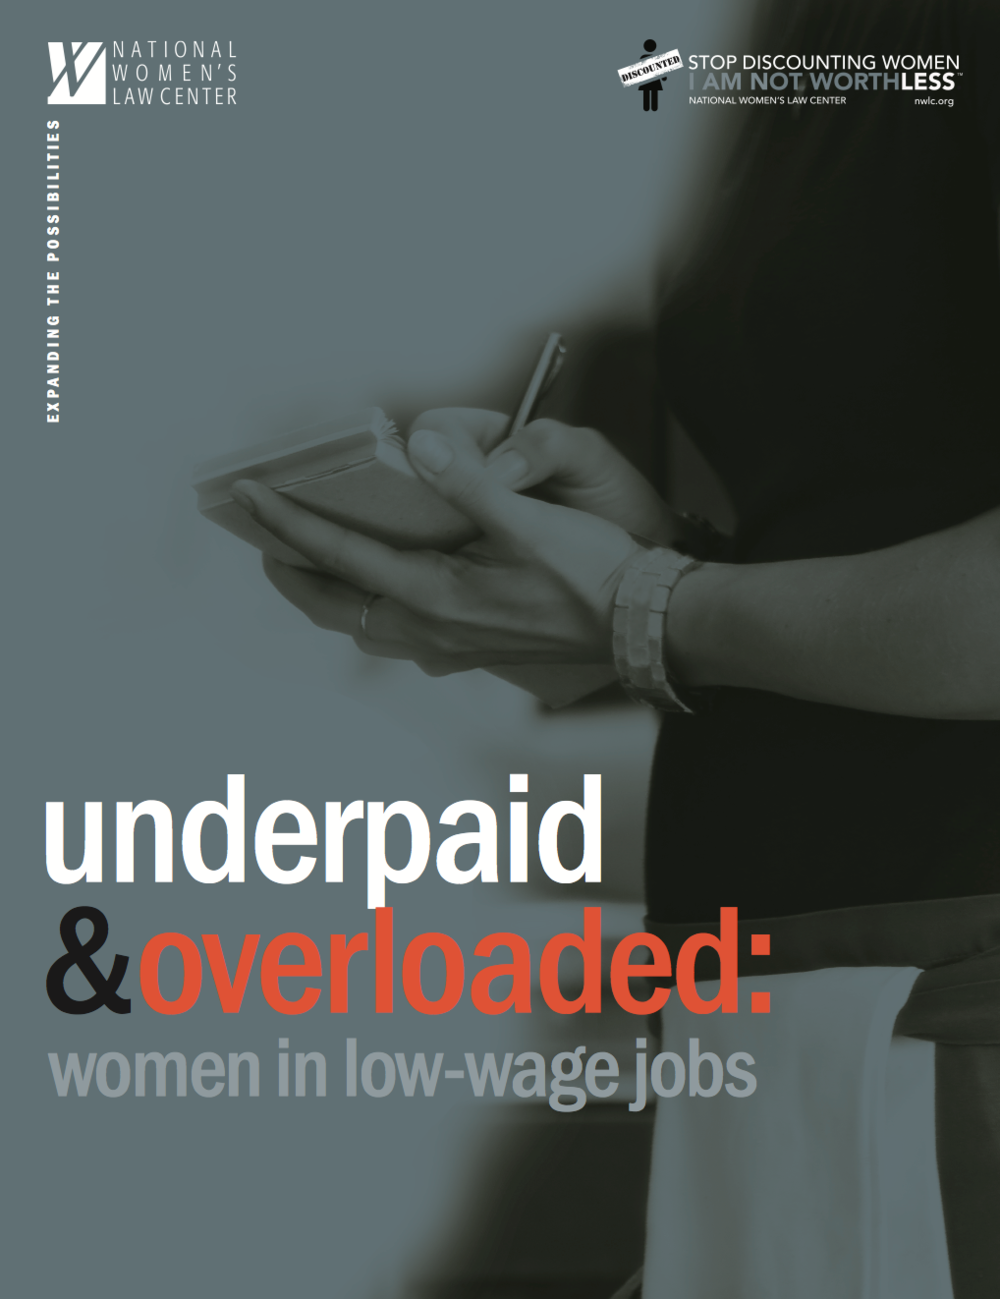 Underpaid & Overloaded: Women in Low Wage Jobs. A new report by the National Women's Law Center delves into the difficulties and inequalities women still face in low wage jobs.